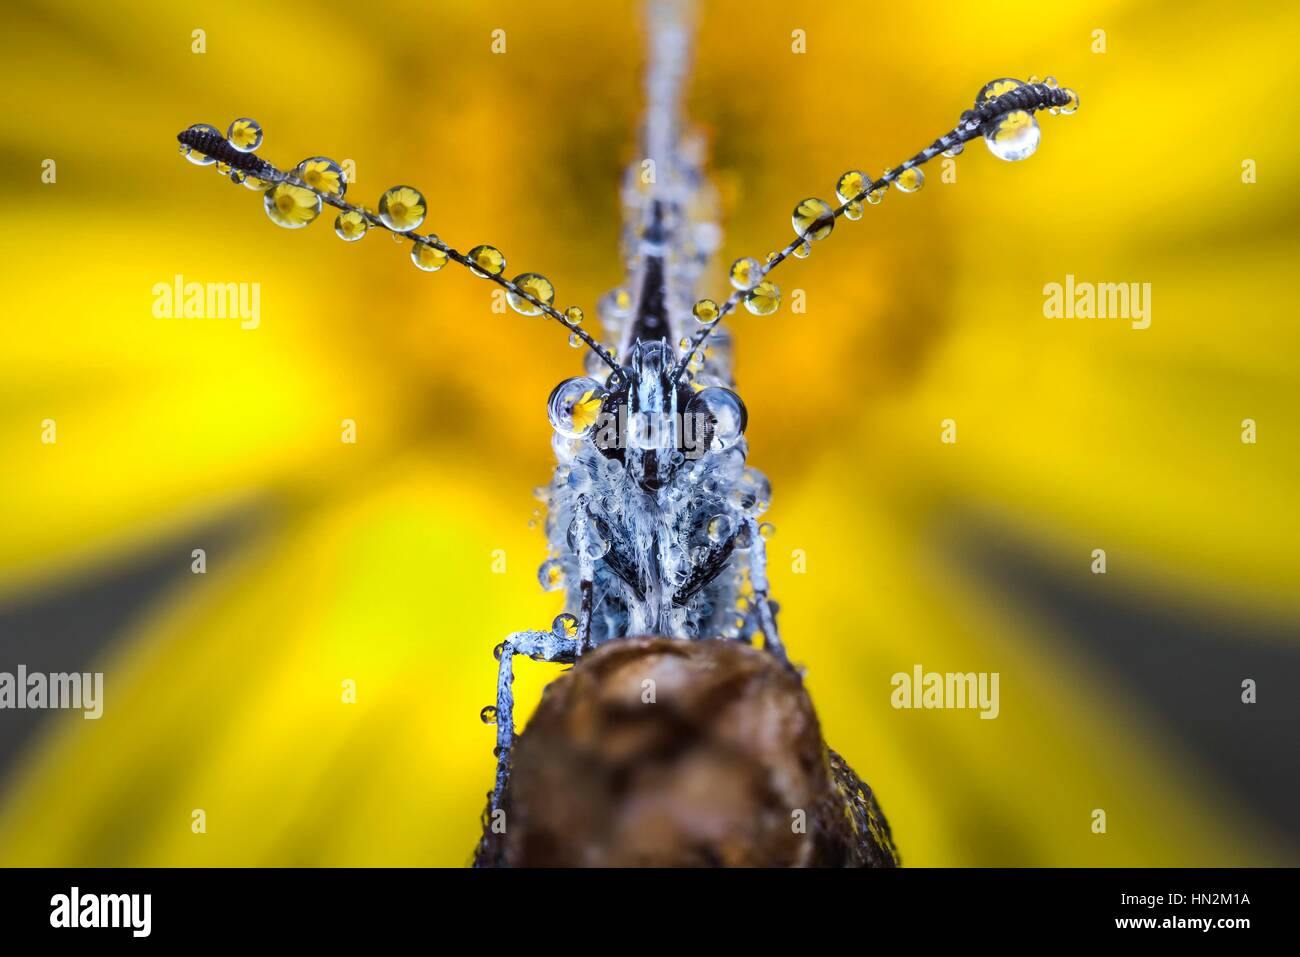 Butterfly with dew drops on its antennae. - Stock Image